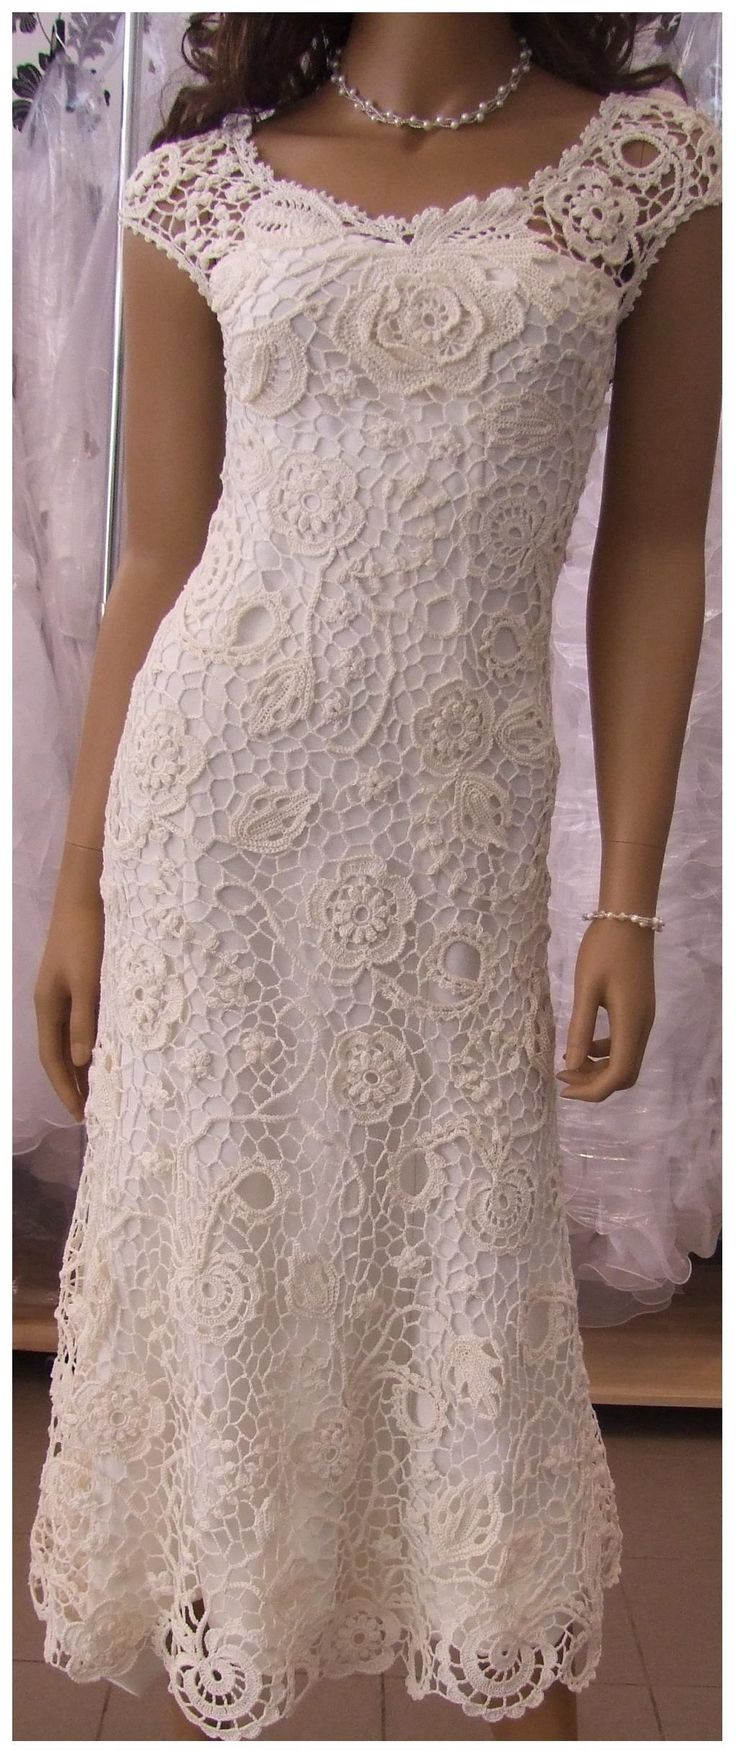 Awesome 22 Best Crochet Wedding Dress Images On Pinterest Crochet Wedding Dresses Of Attractive 47 Models Crochet Wedding Dresses